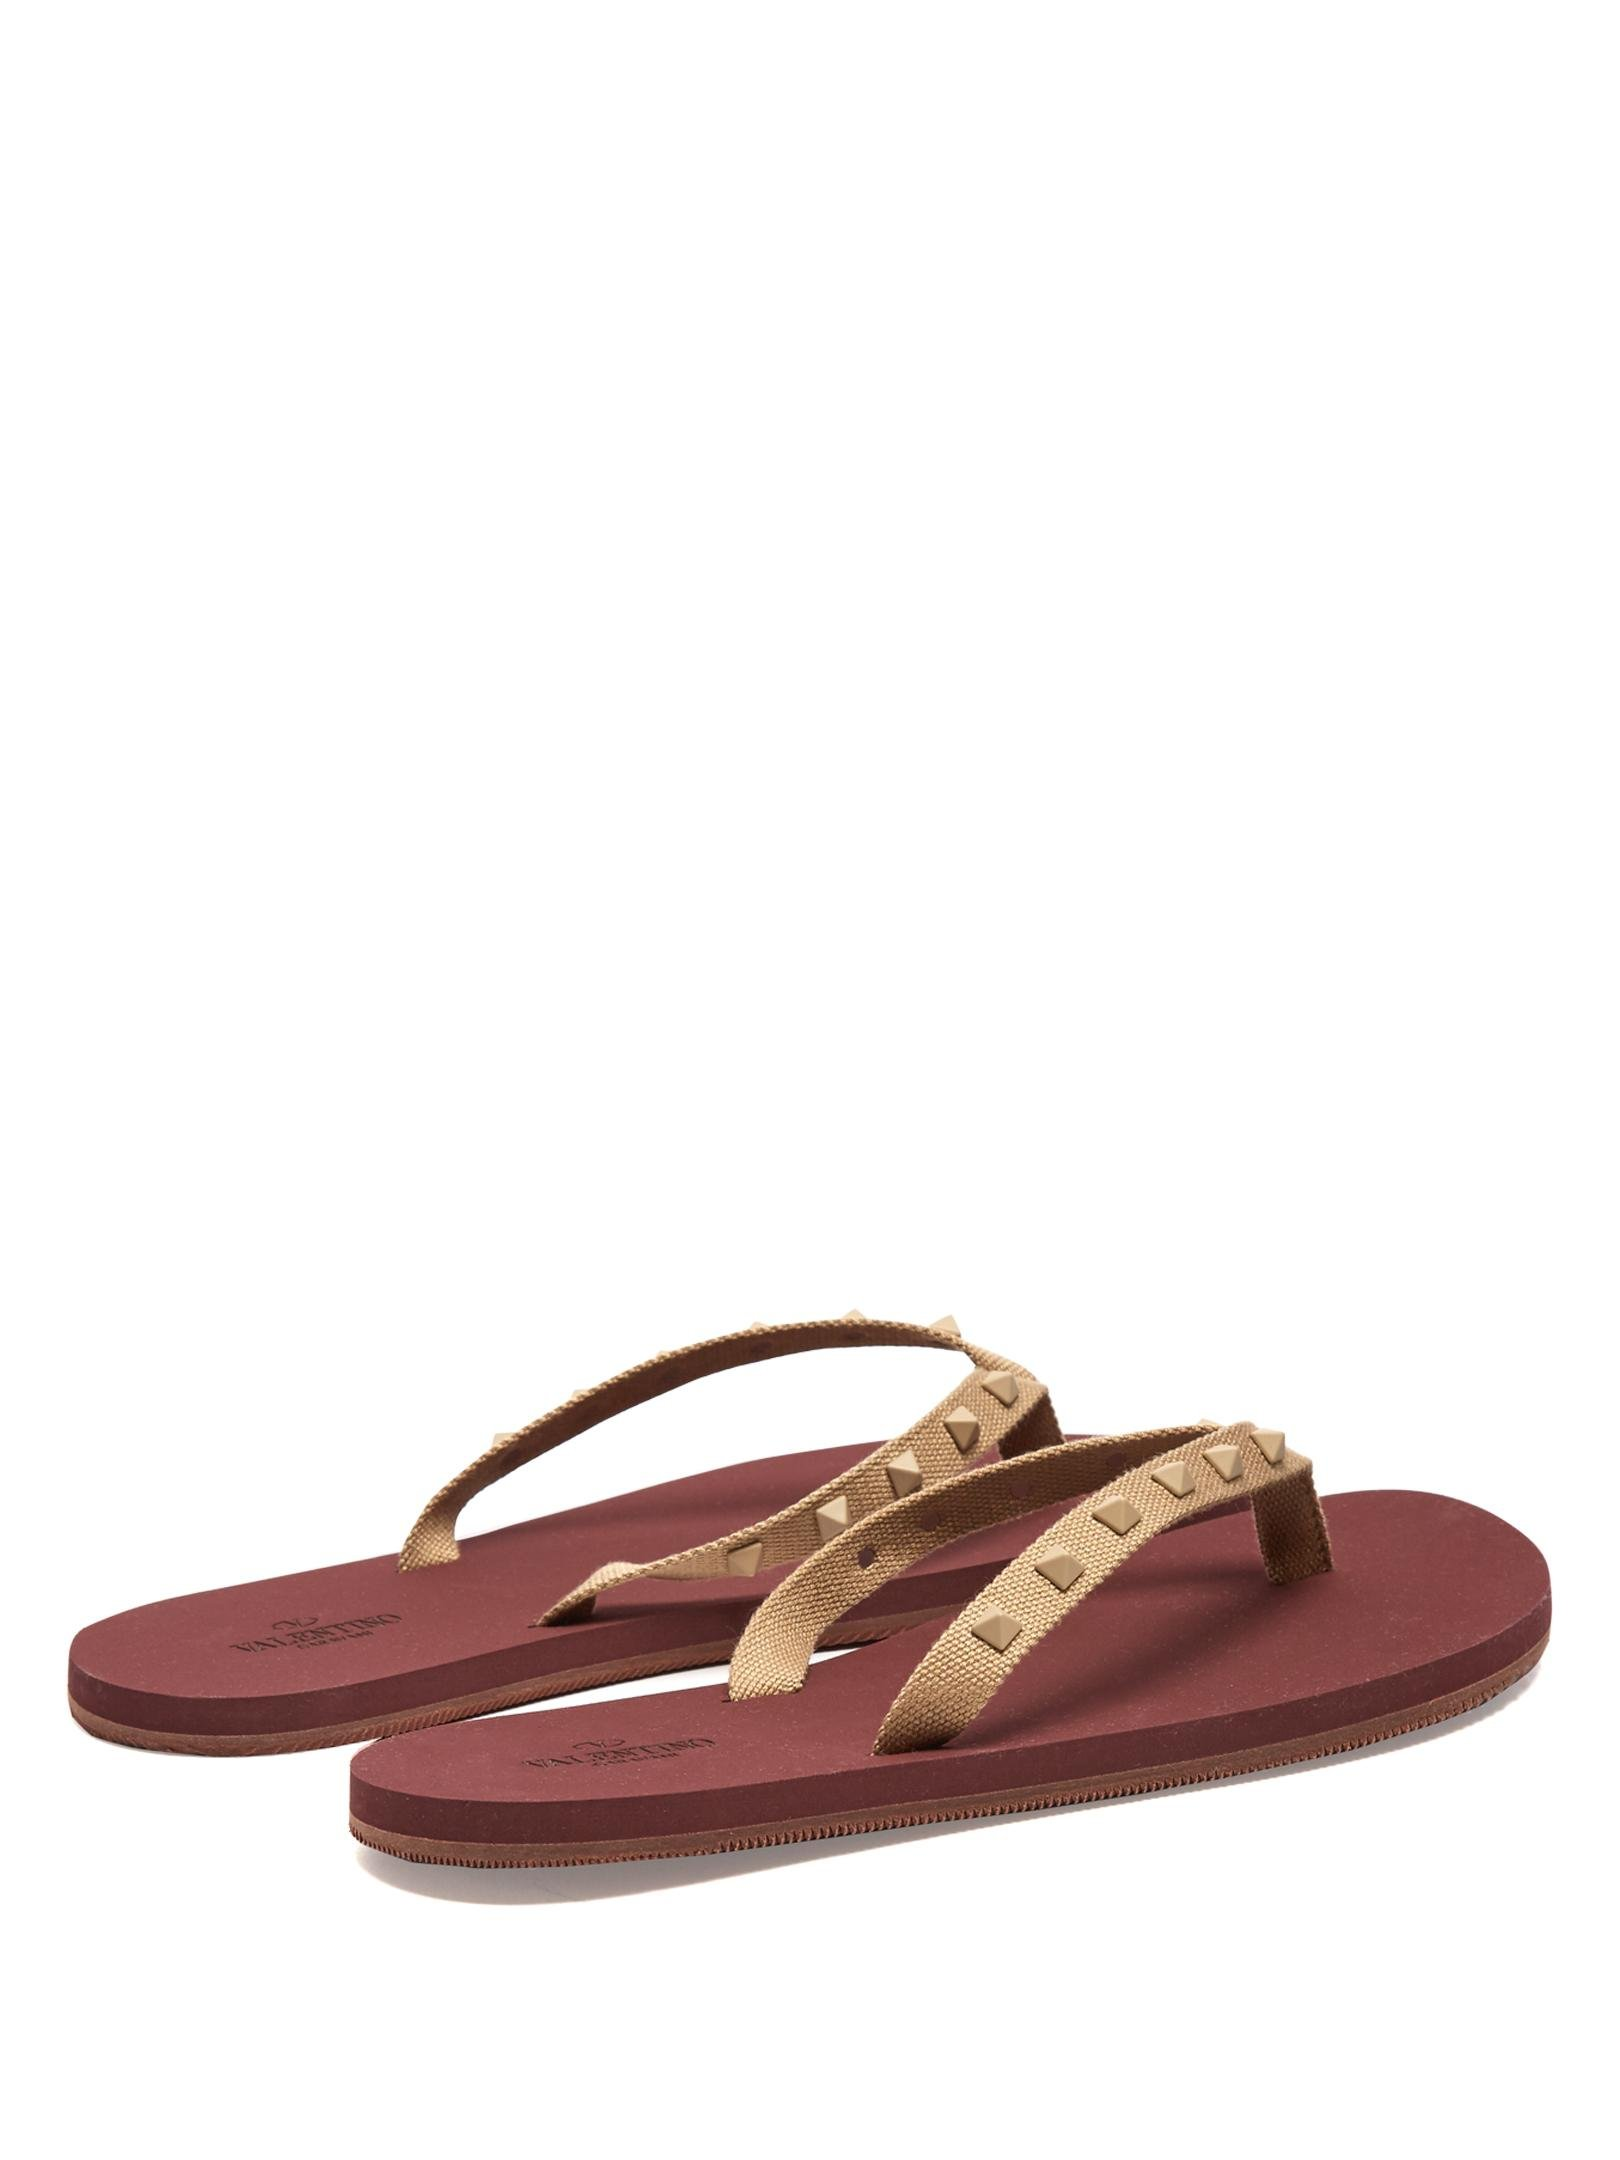 valentino rockstud rubber flip flops for men lyst. Black Bedroom Furniture Sets. Home Design Ideas